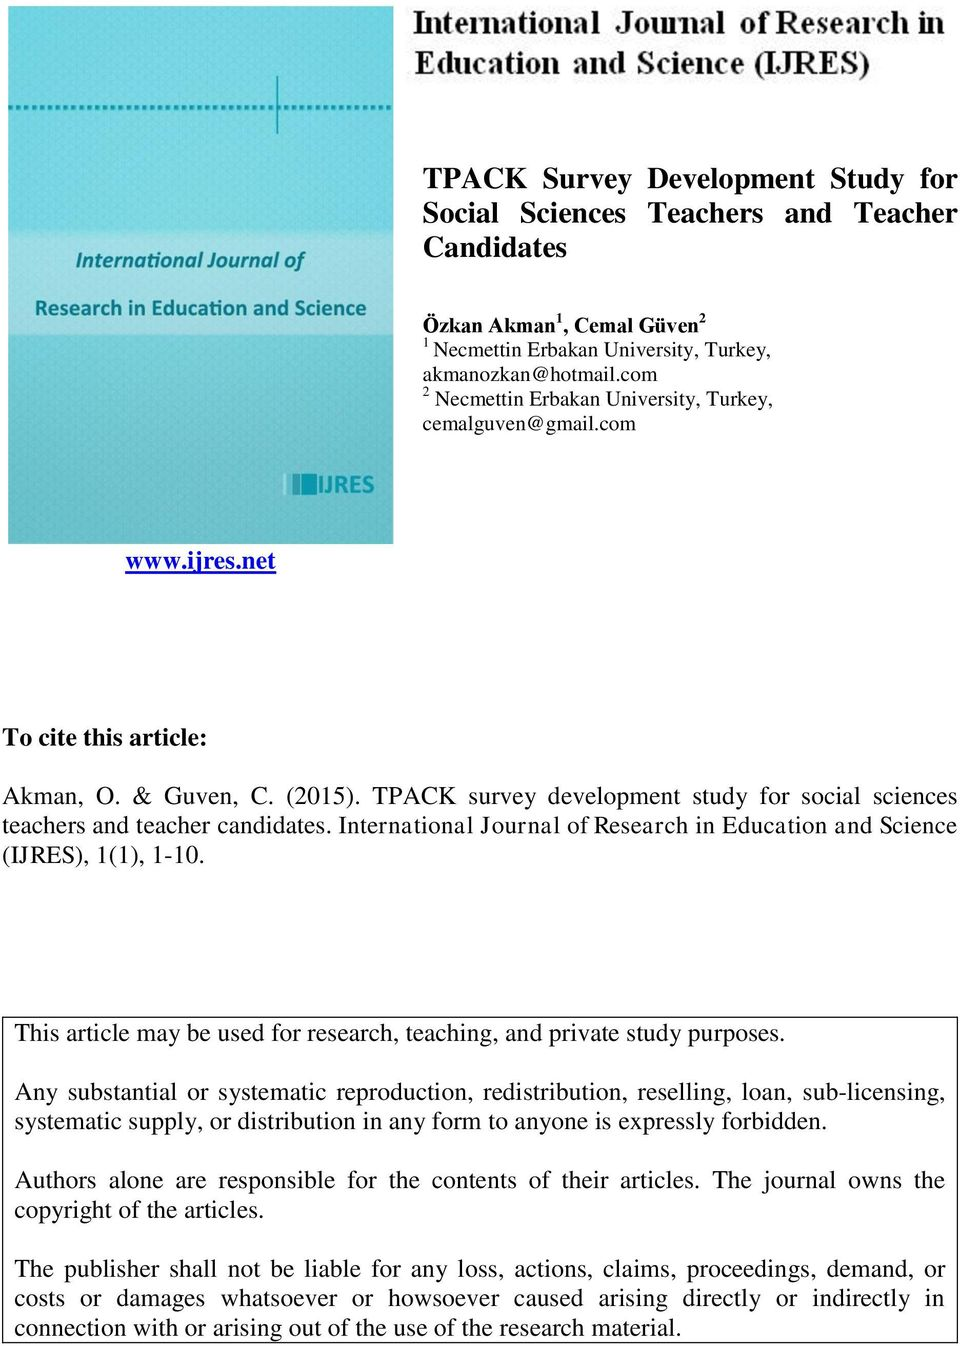 TPACK survey development study for social sciences teachers and teacher candidates. International Journal of Research in Education and Science (IJRES), 1(1), 1-10.